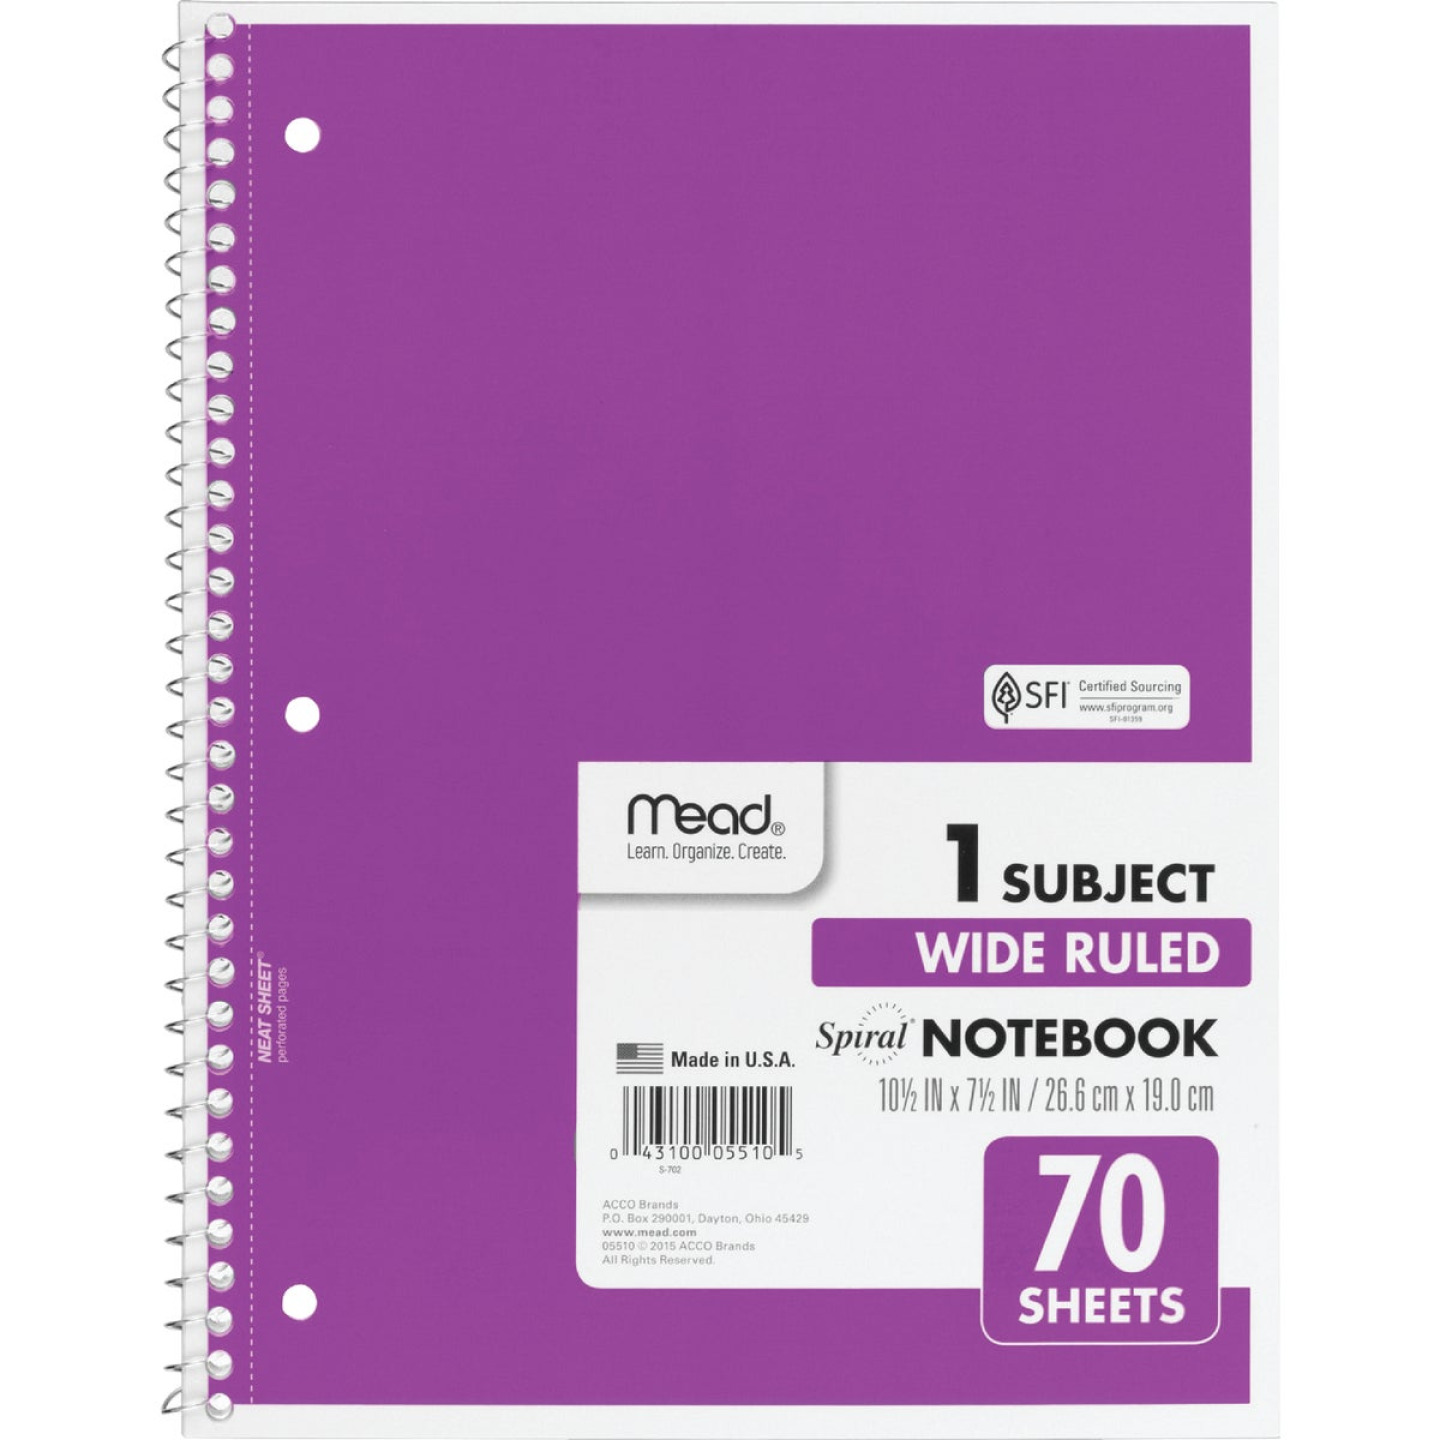 Mead 8 In. W. x 10-1/2 In. H. 70-Sheet Side-Spiral Notebook Image 1